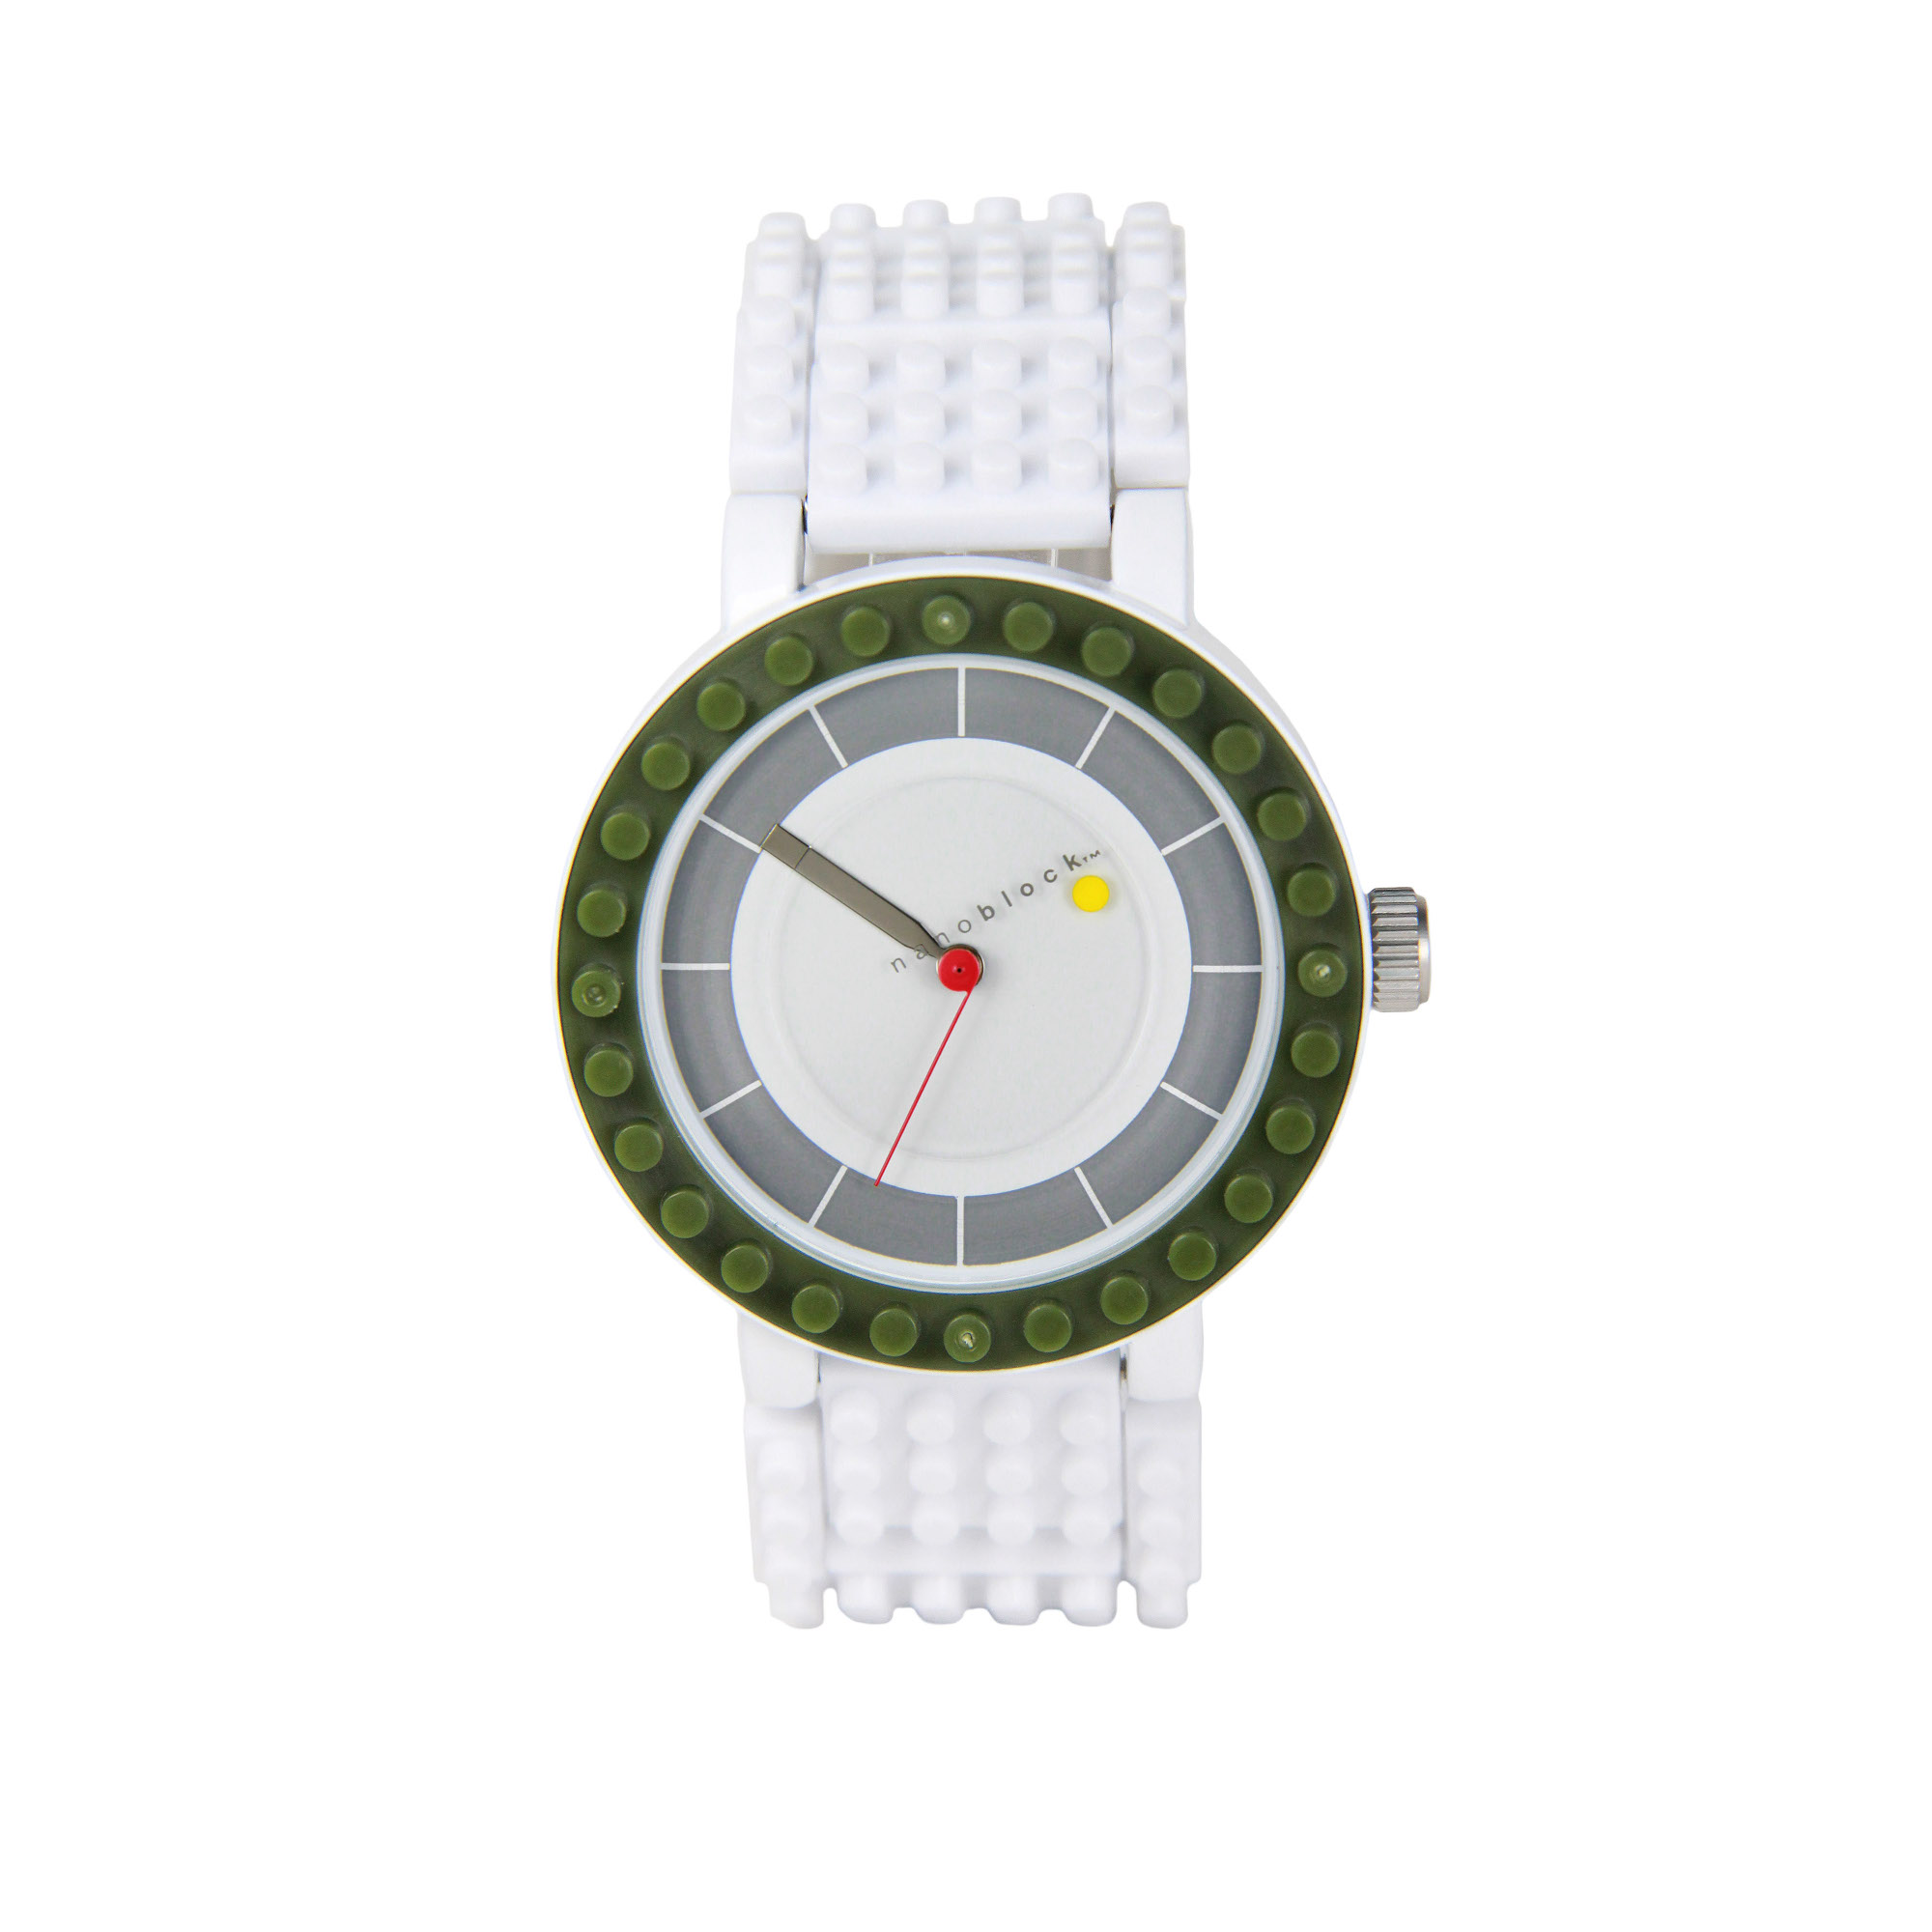 Nanoblocktime All Rounder Watch, Olive by Beta Enteprises Inc.